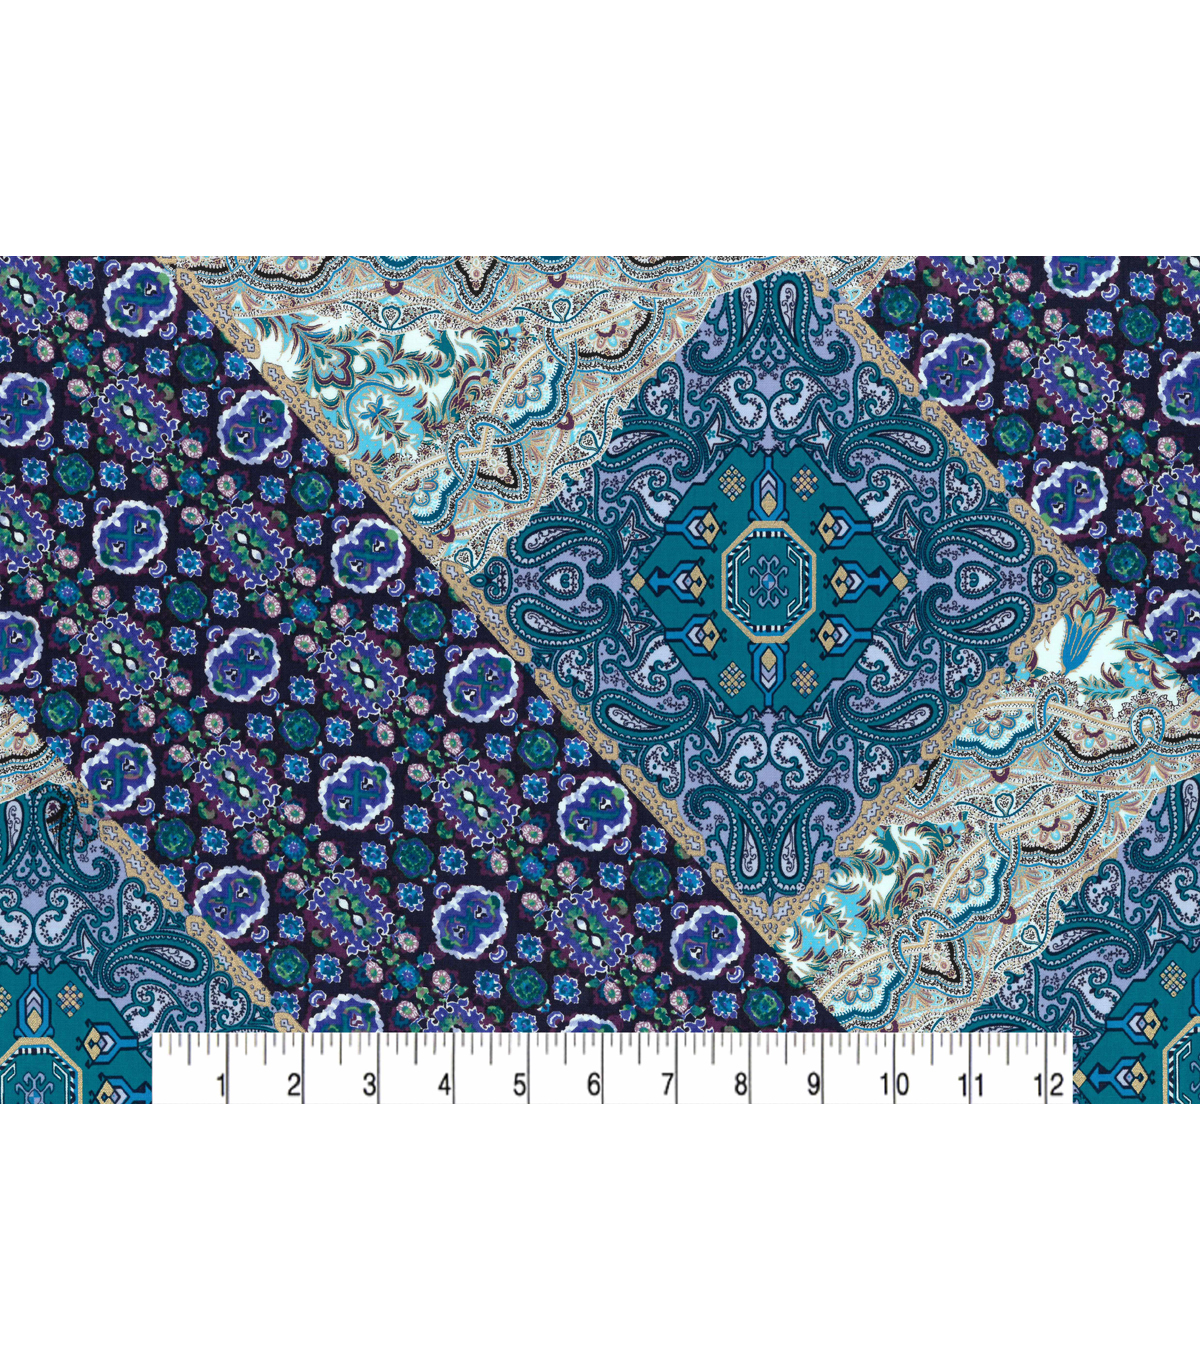 Two Daughters™ Premium Quilt Cotton Fabric 43\u0027\u0027-Majestic Peacock Patch